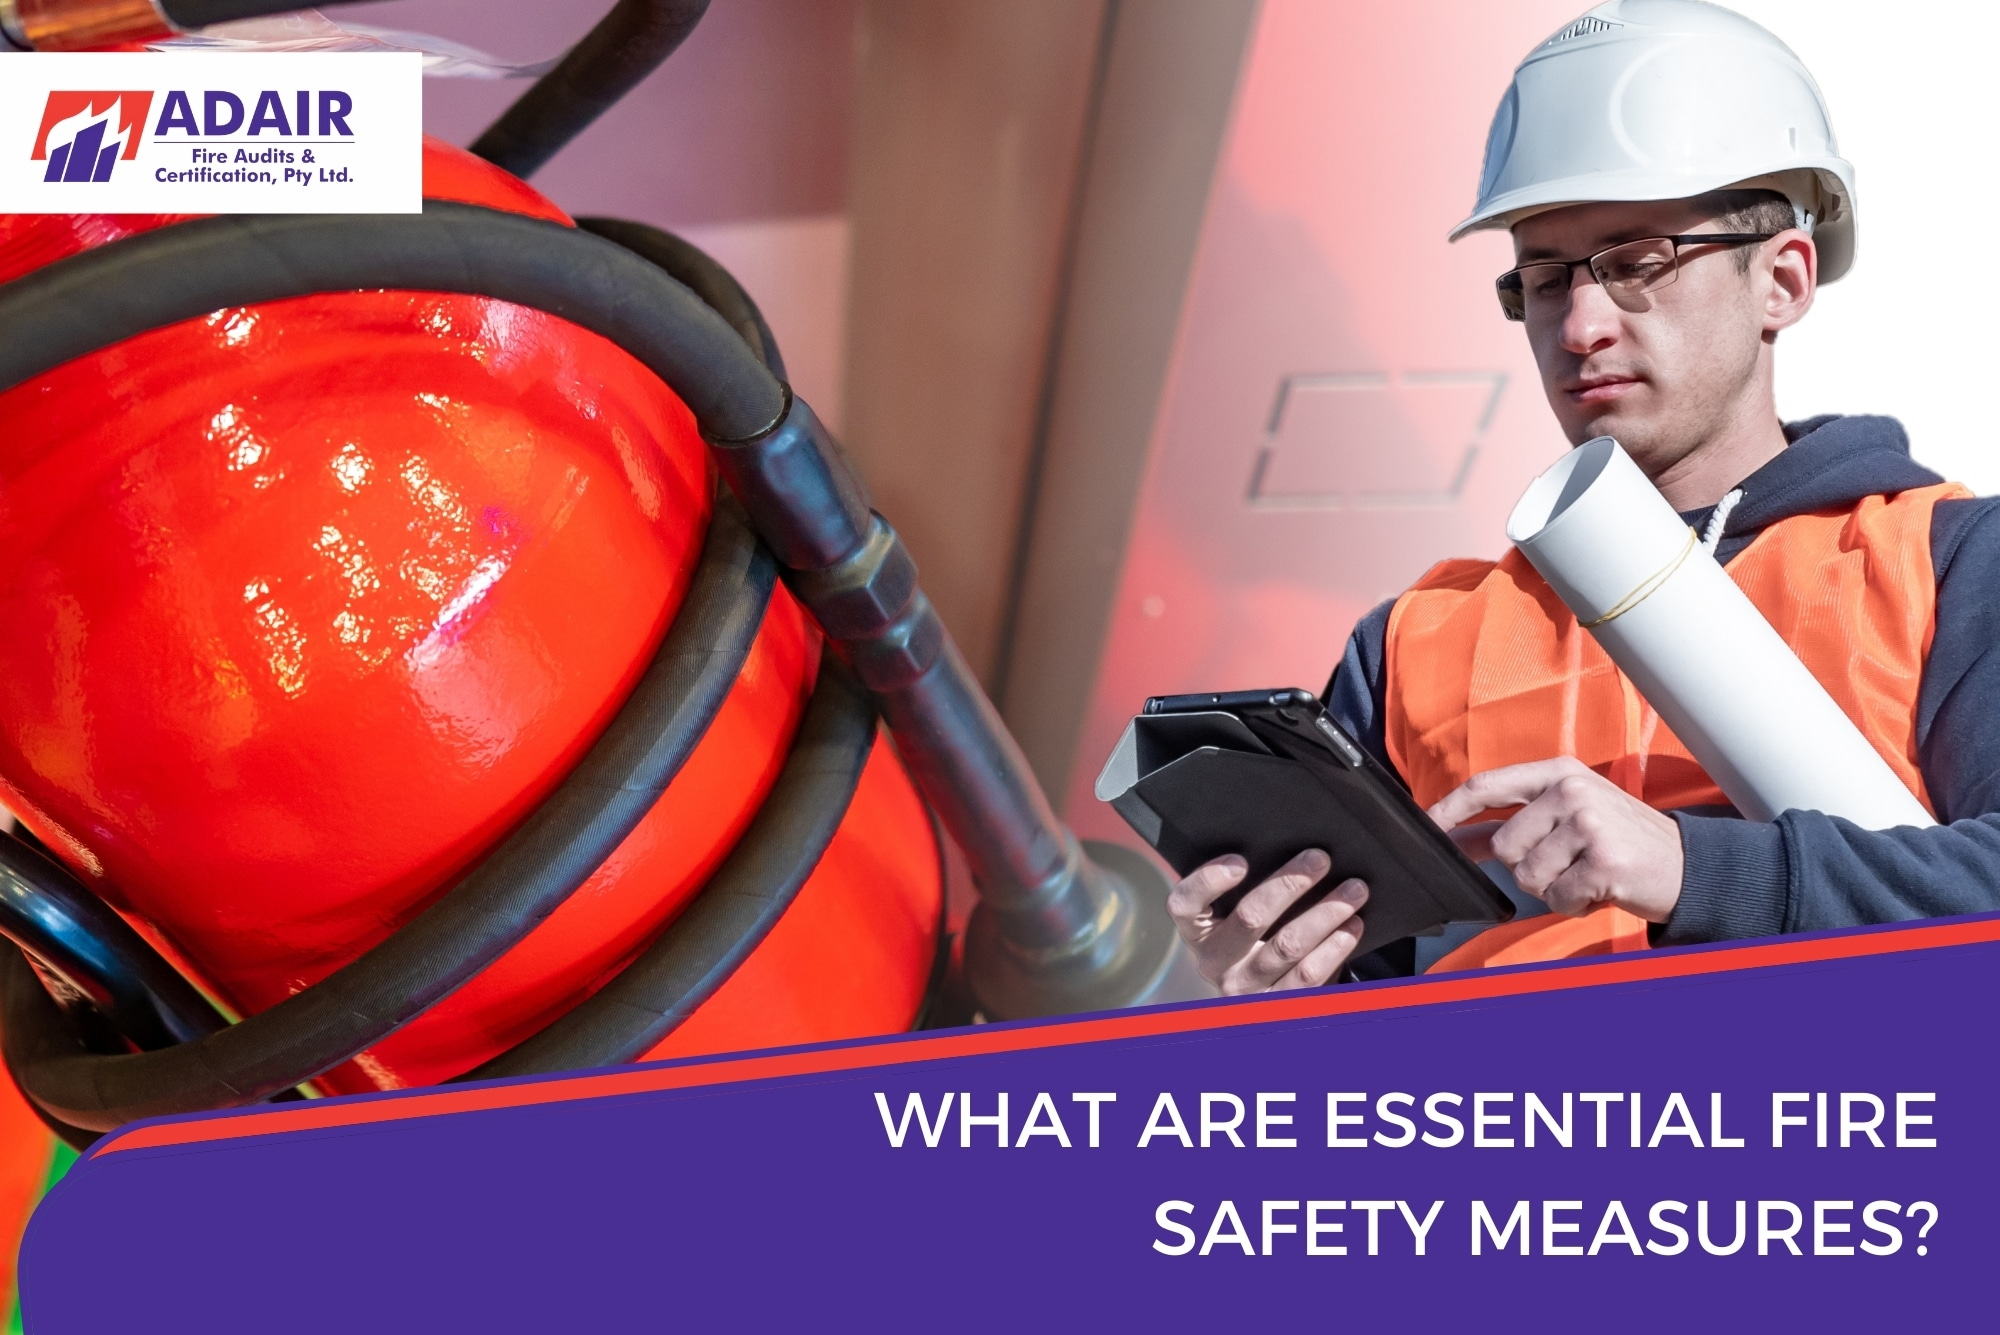 What are Essential Fire Safety Measures